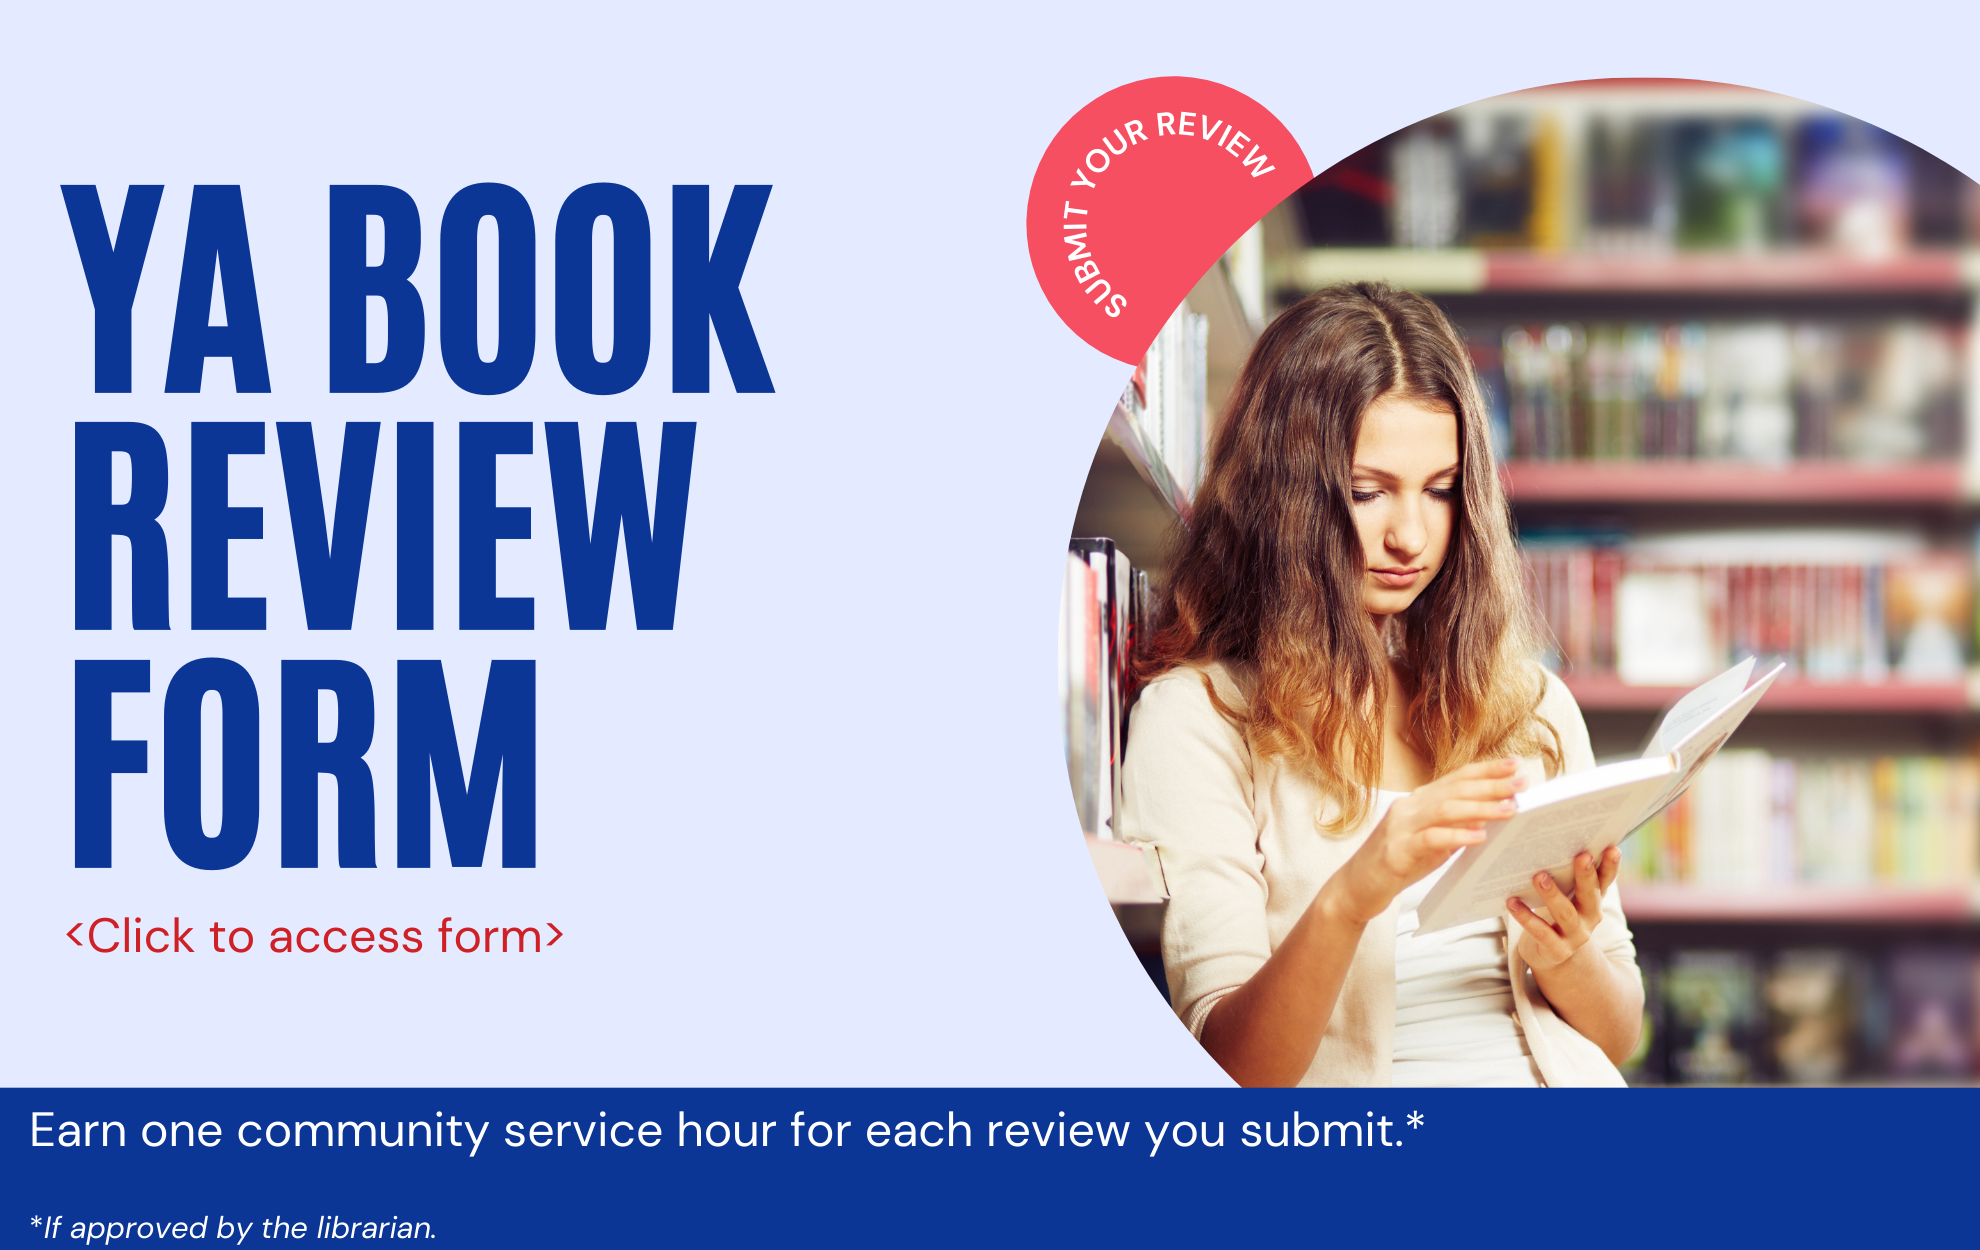 Click to submit your YA book review